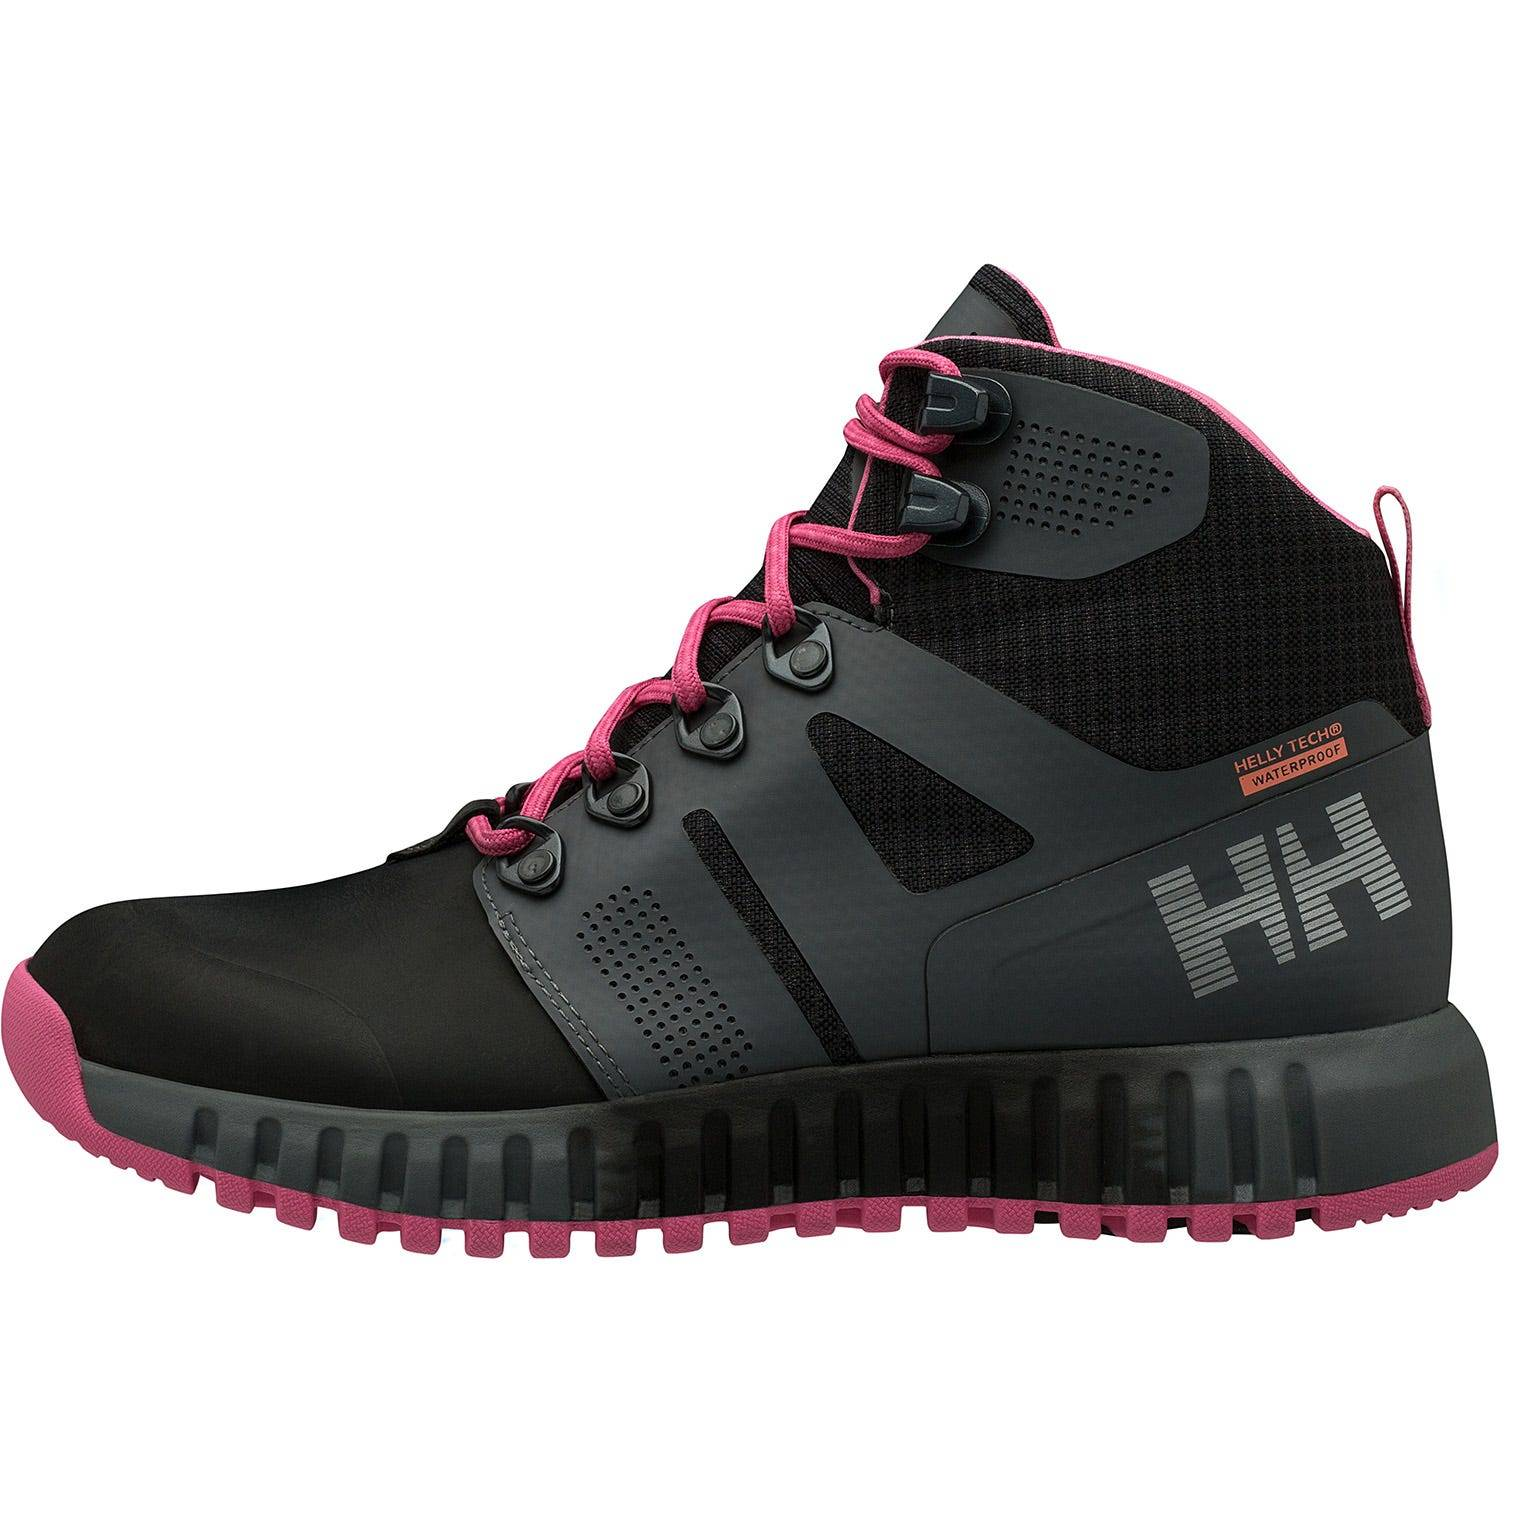 Helly Hansen W Vanir Gallivant Ht Womens Hiking Boot Black 38.7/7.5